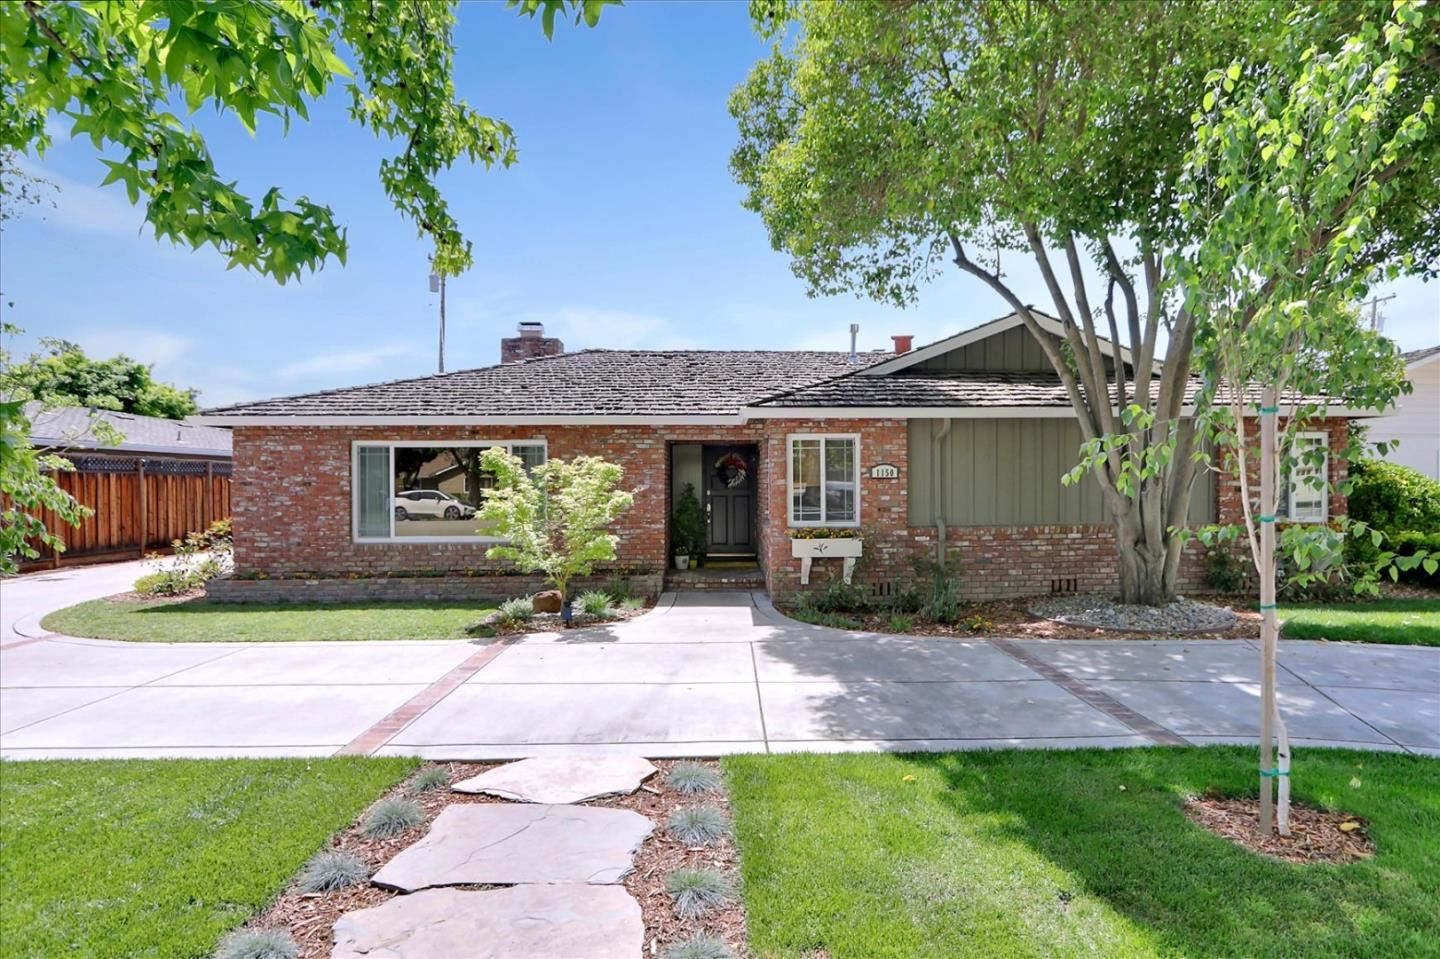 Photo for 1150 Denise Way, SAN JOSE, CA 95125 (MLS # ML81842216)